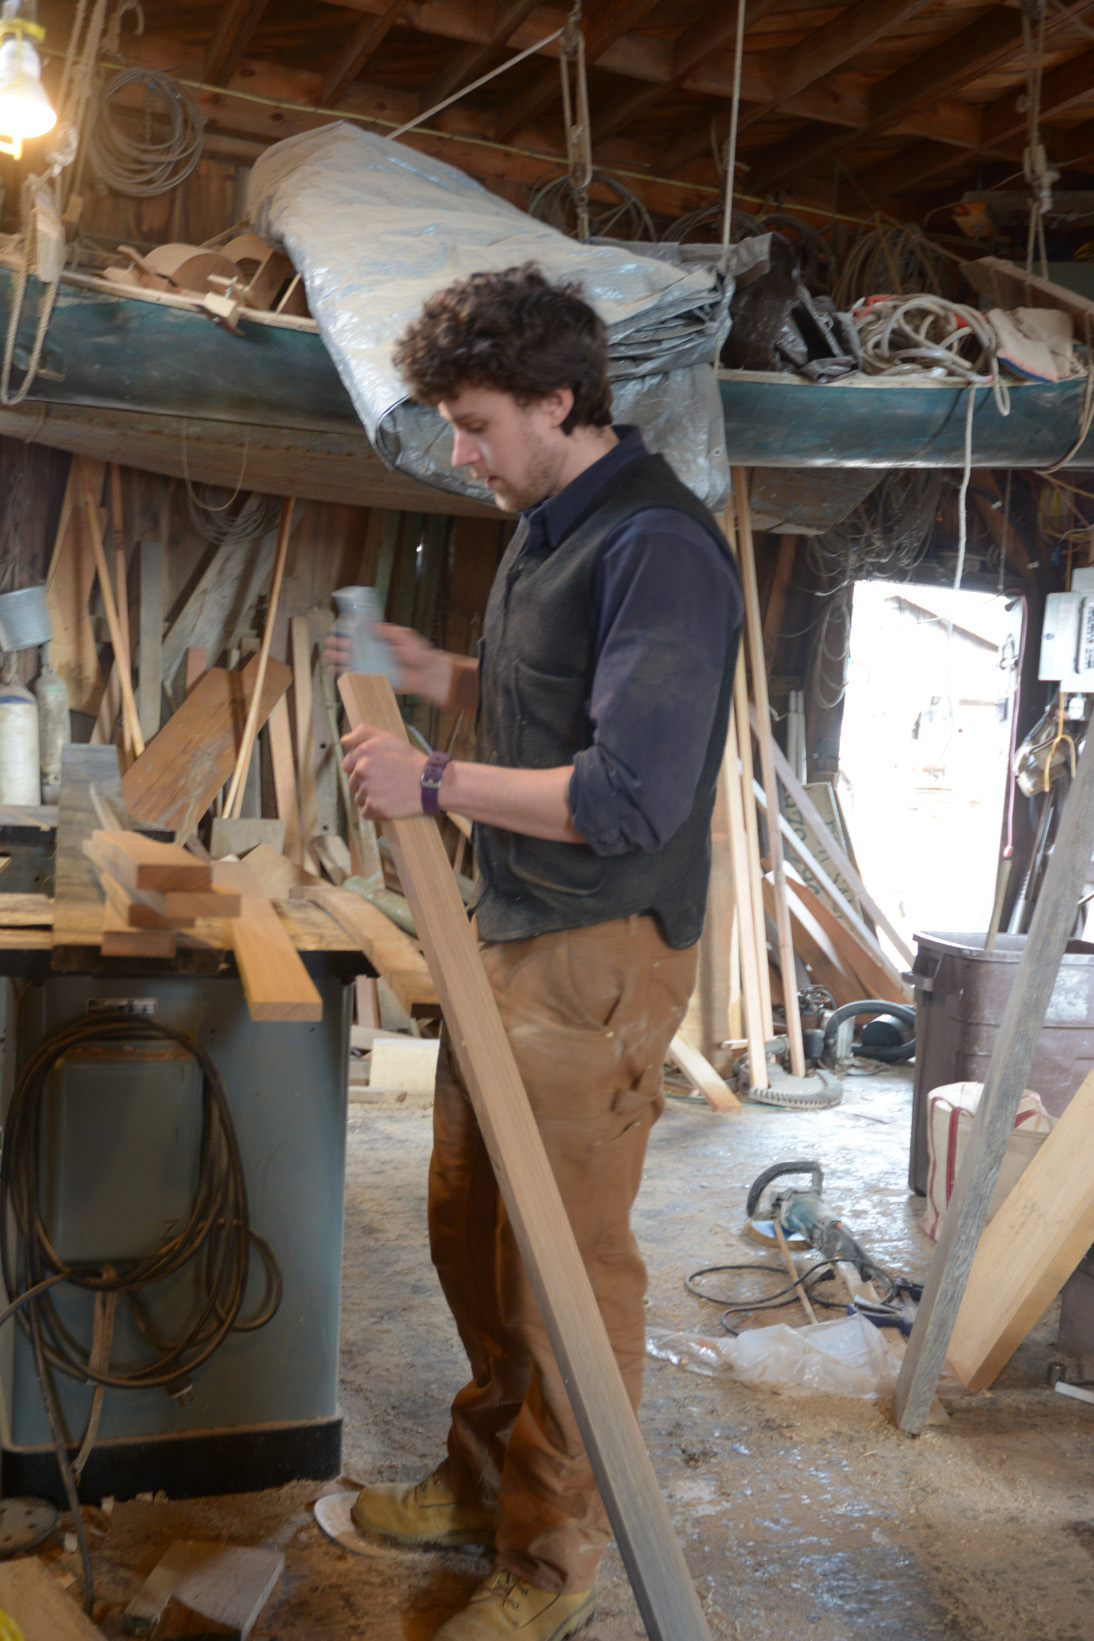 Alden sanding the end of a board that will become a rib.